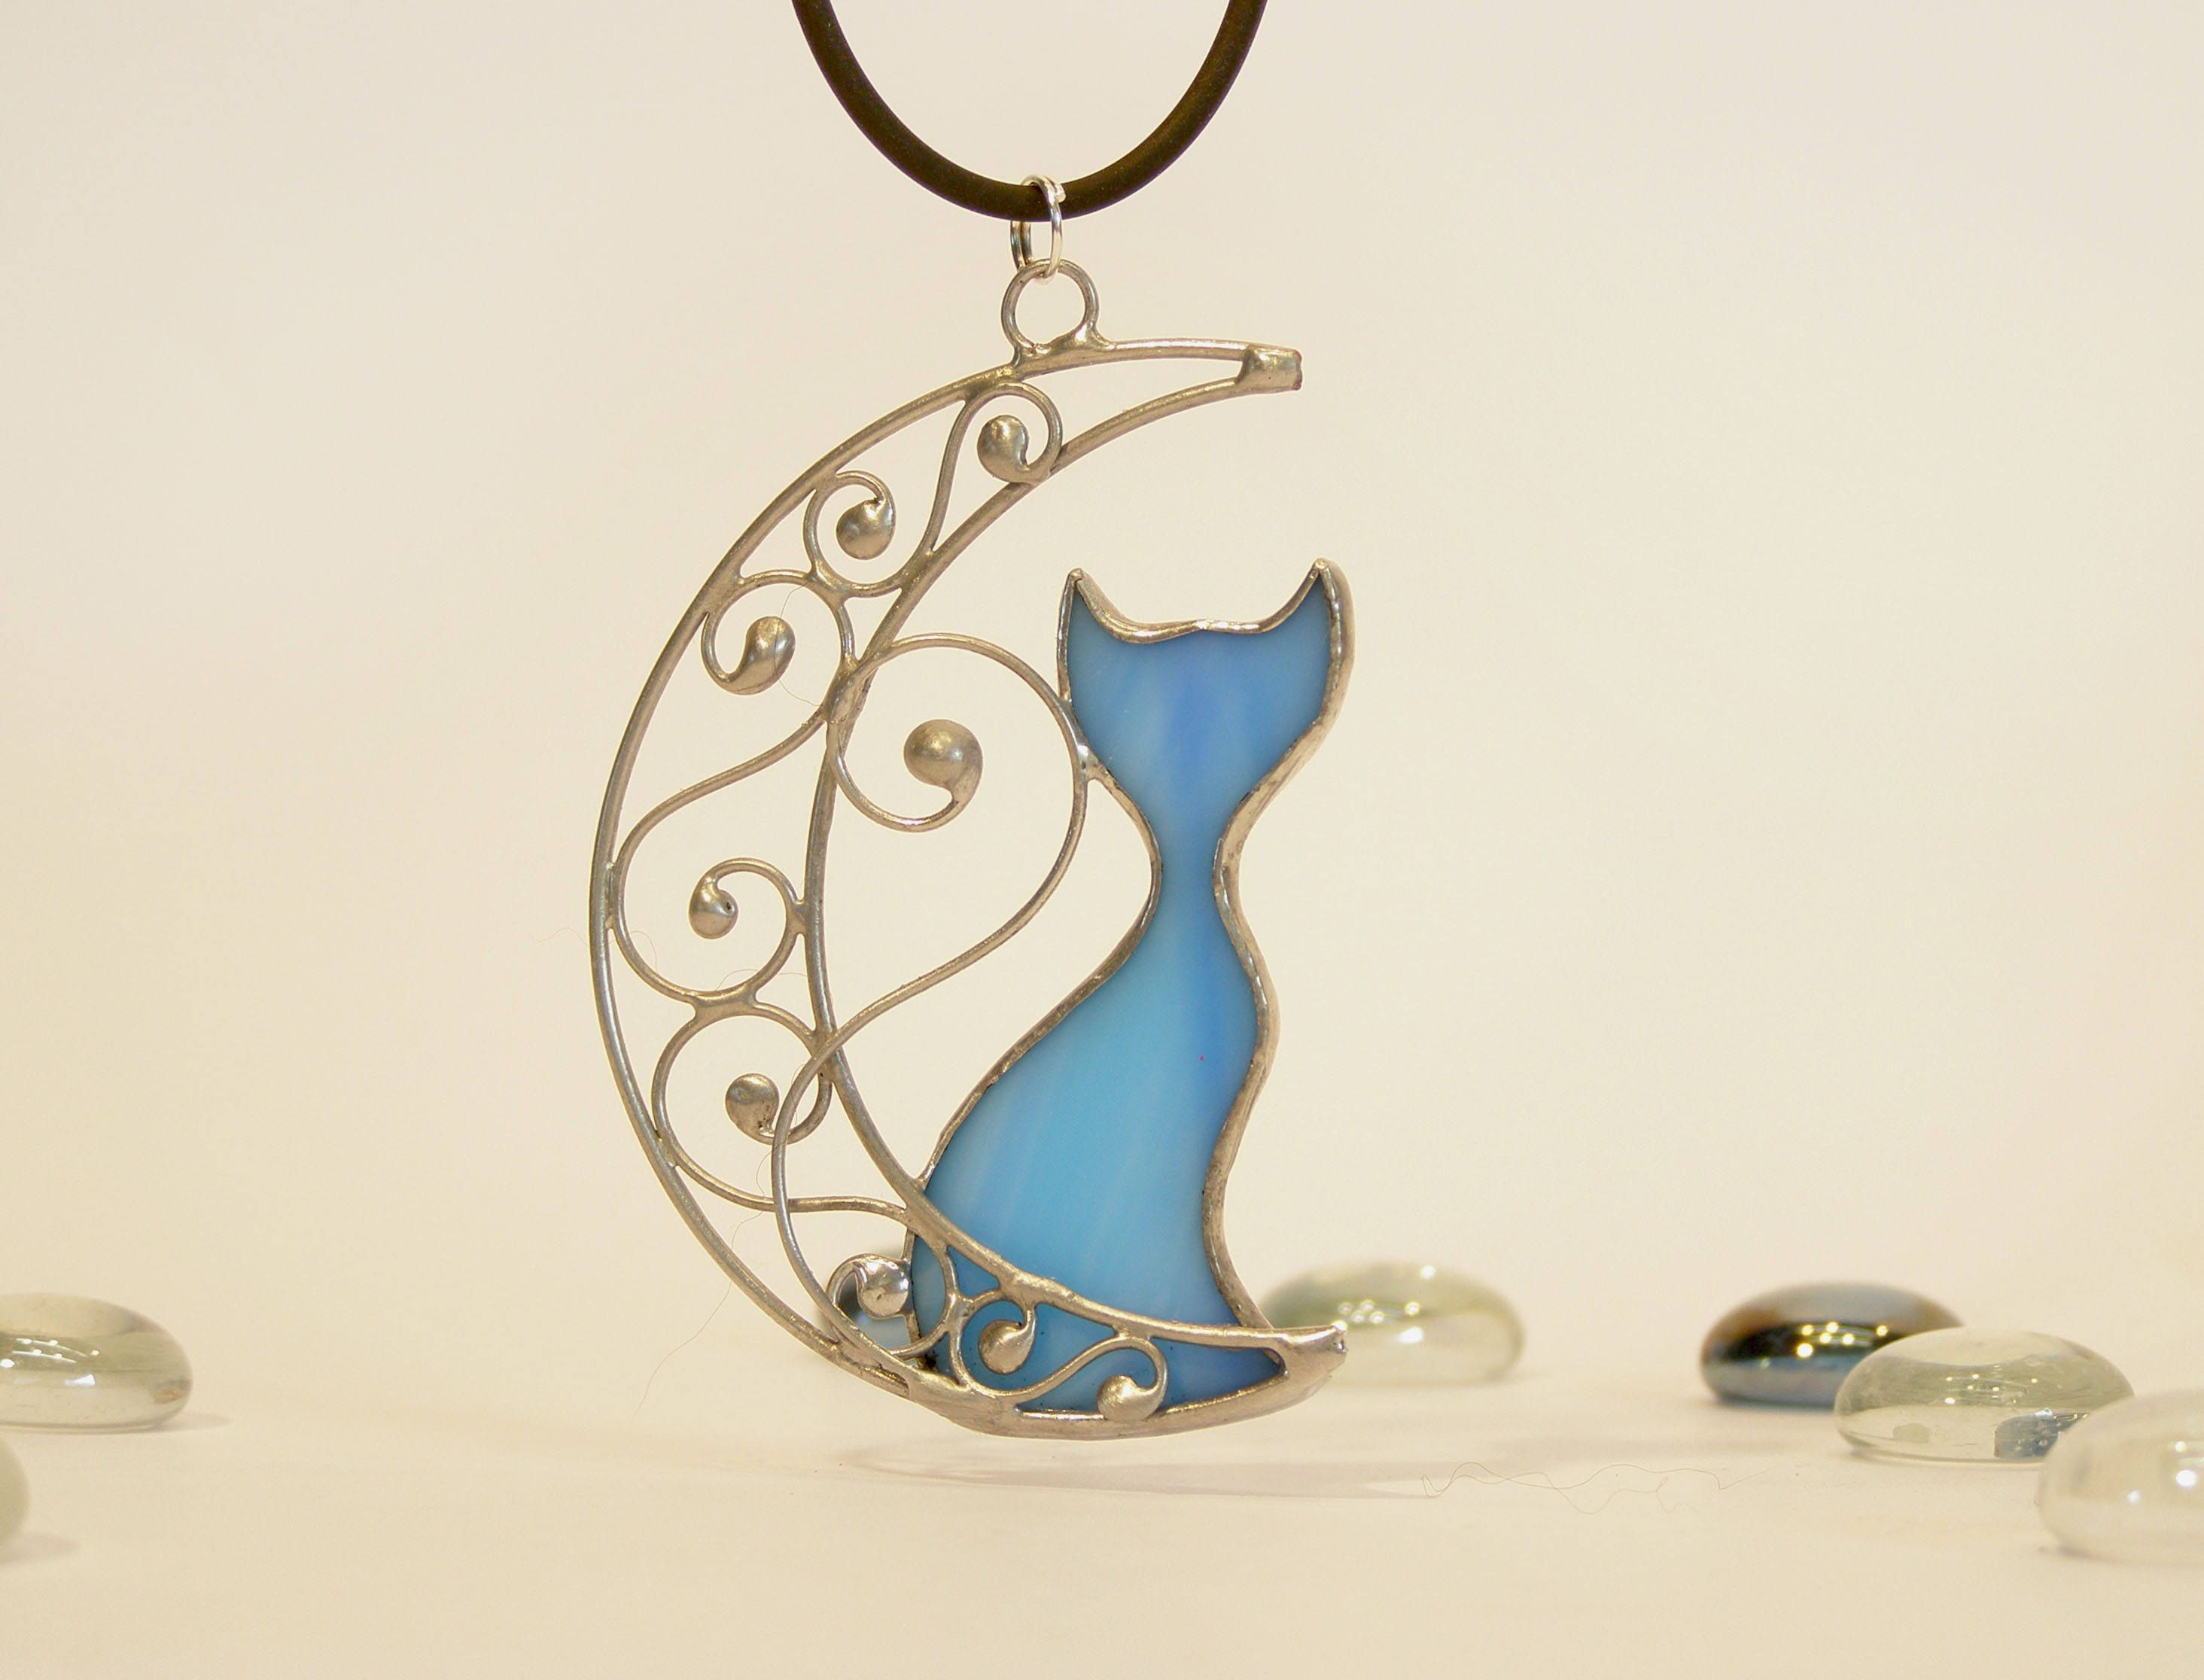 mom cat necklace lover all called jewellery you jewelry and need pin adoption a rescue charm is love silver gift